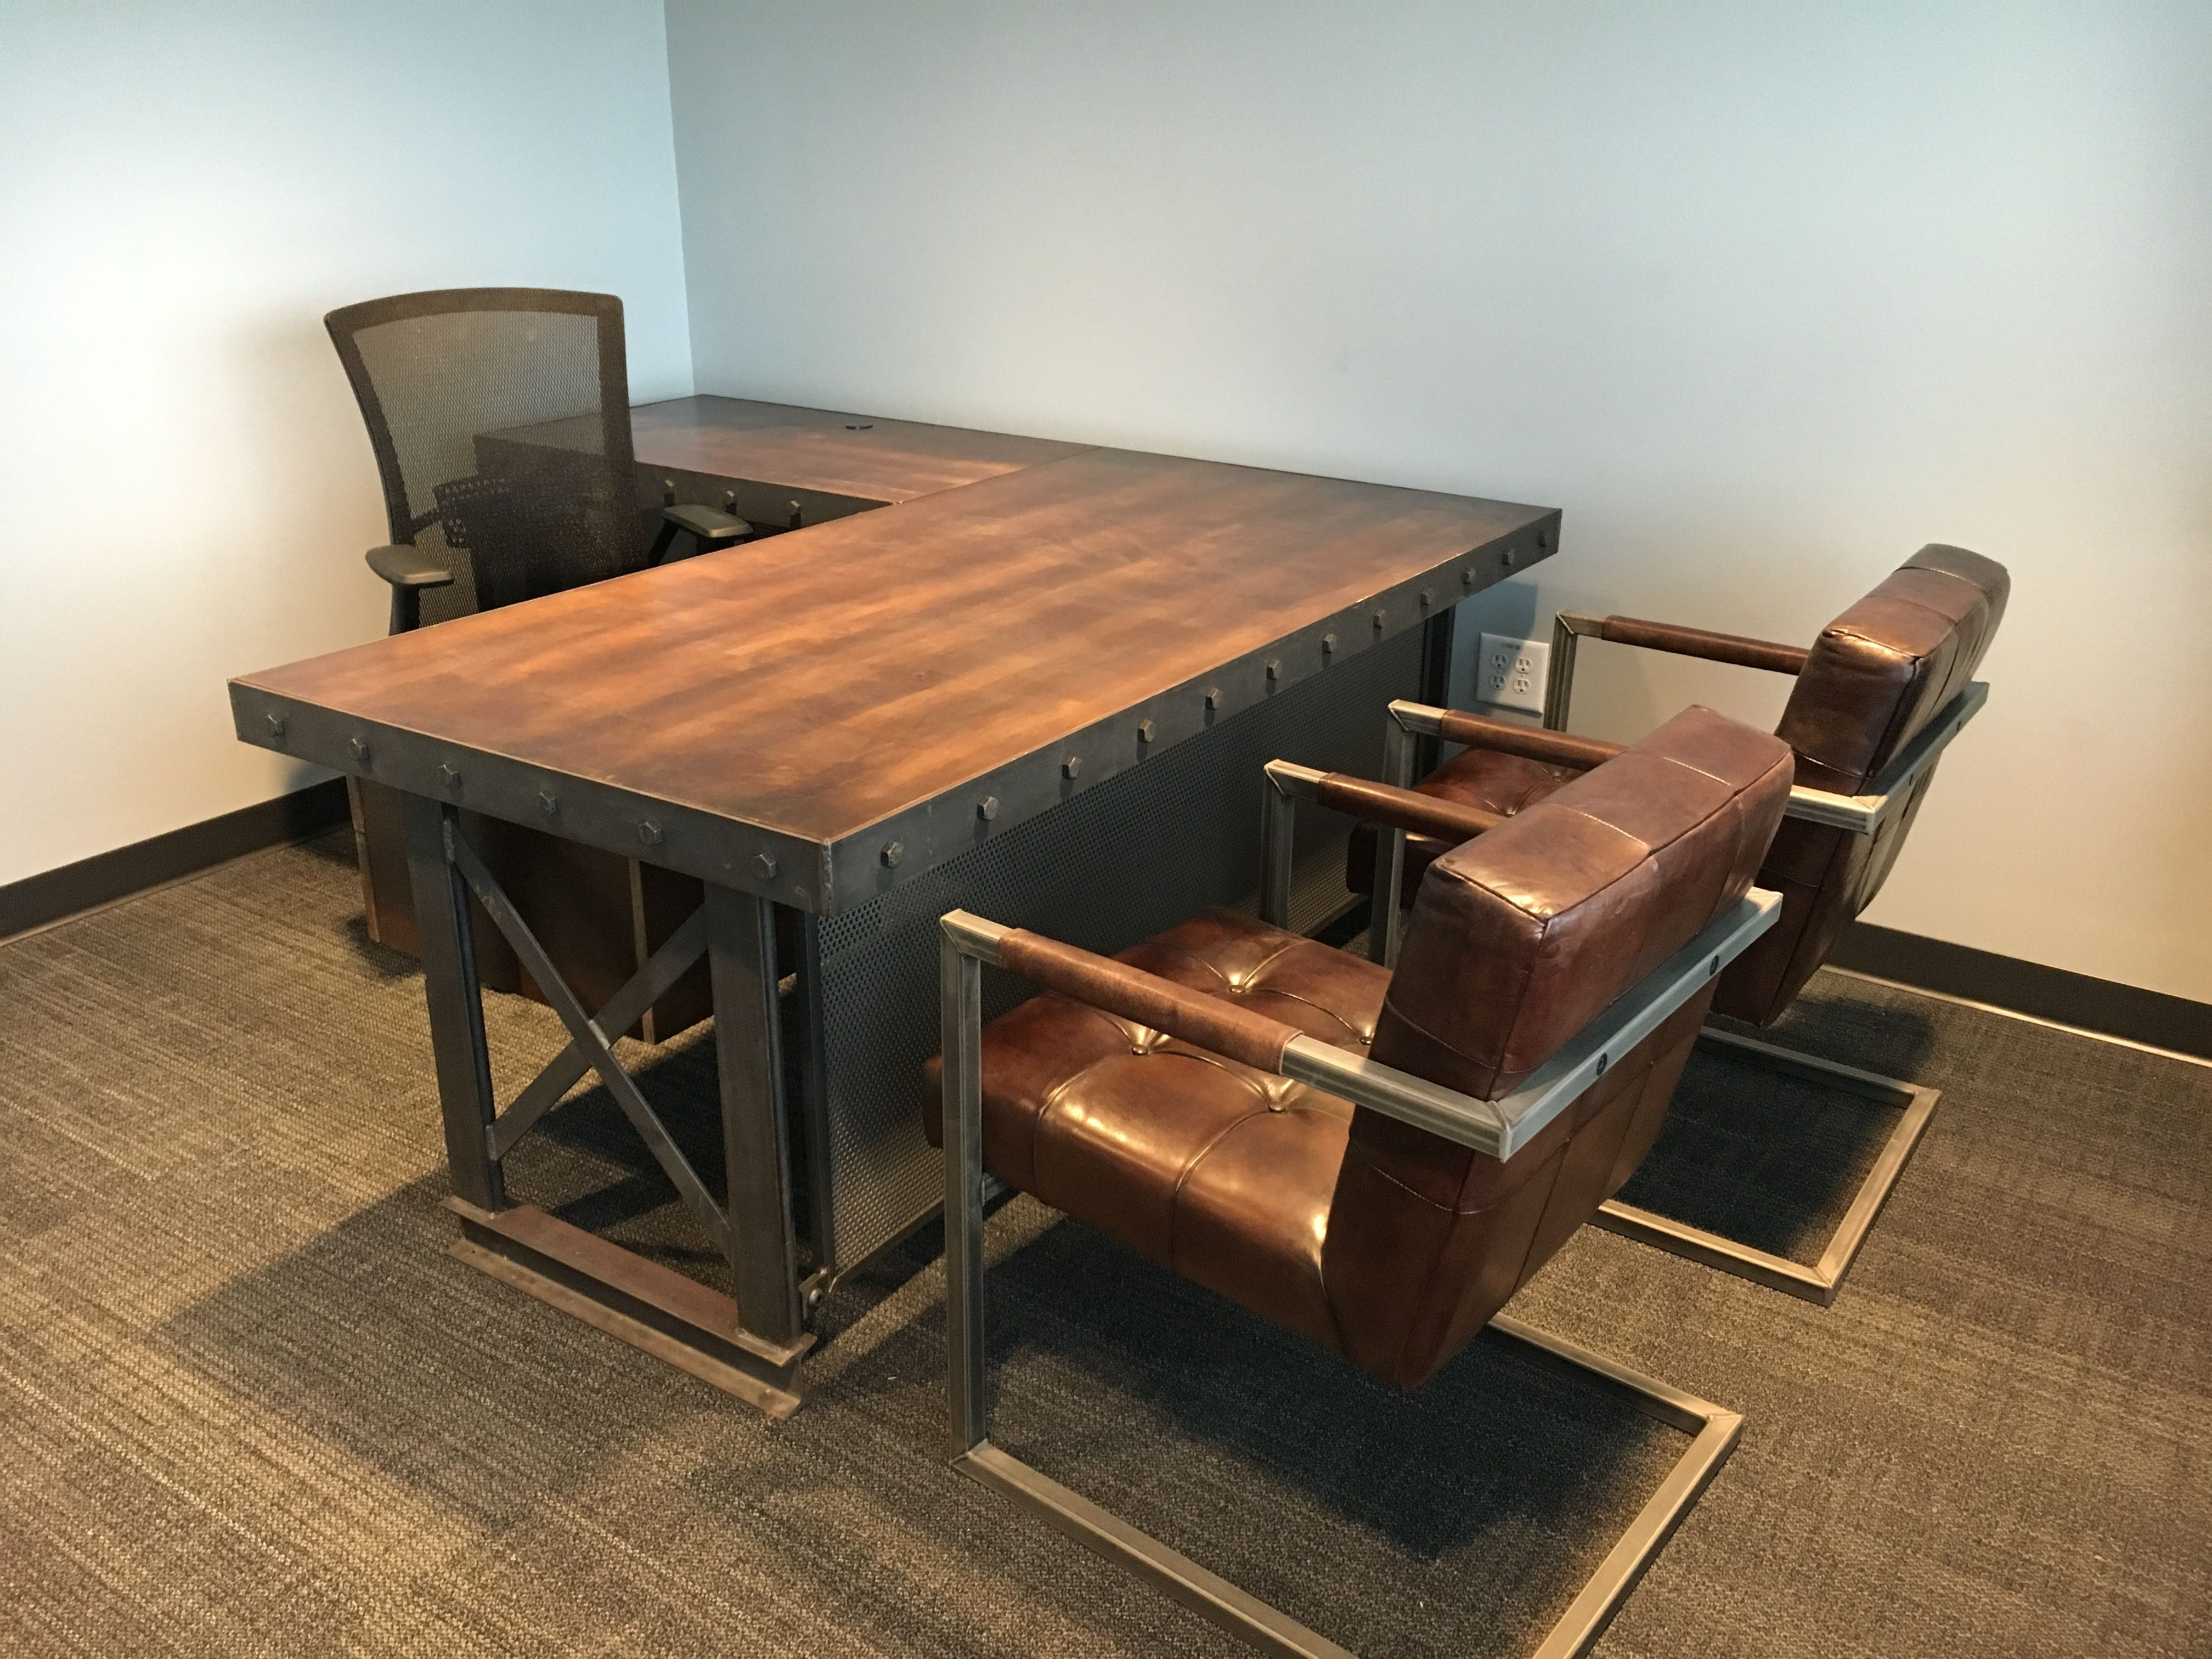 The Hybrid Industrial Executive Office Desk